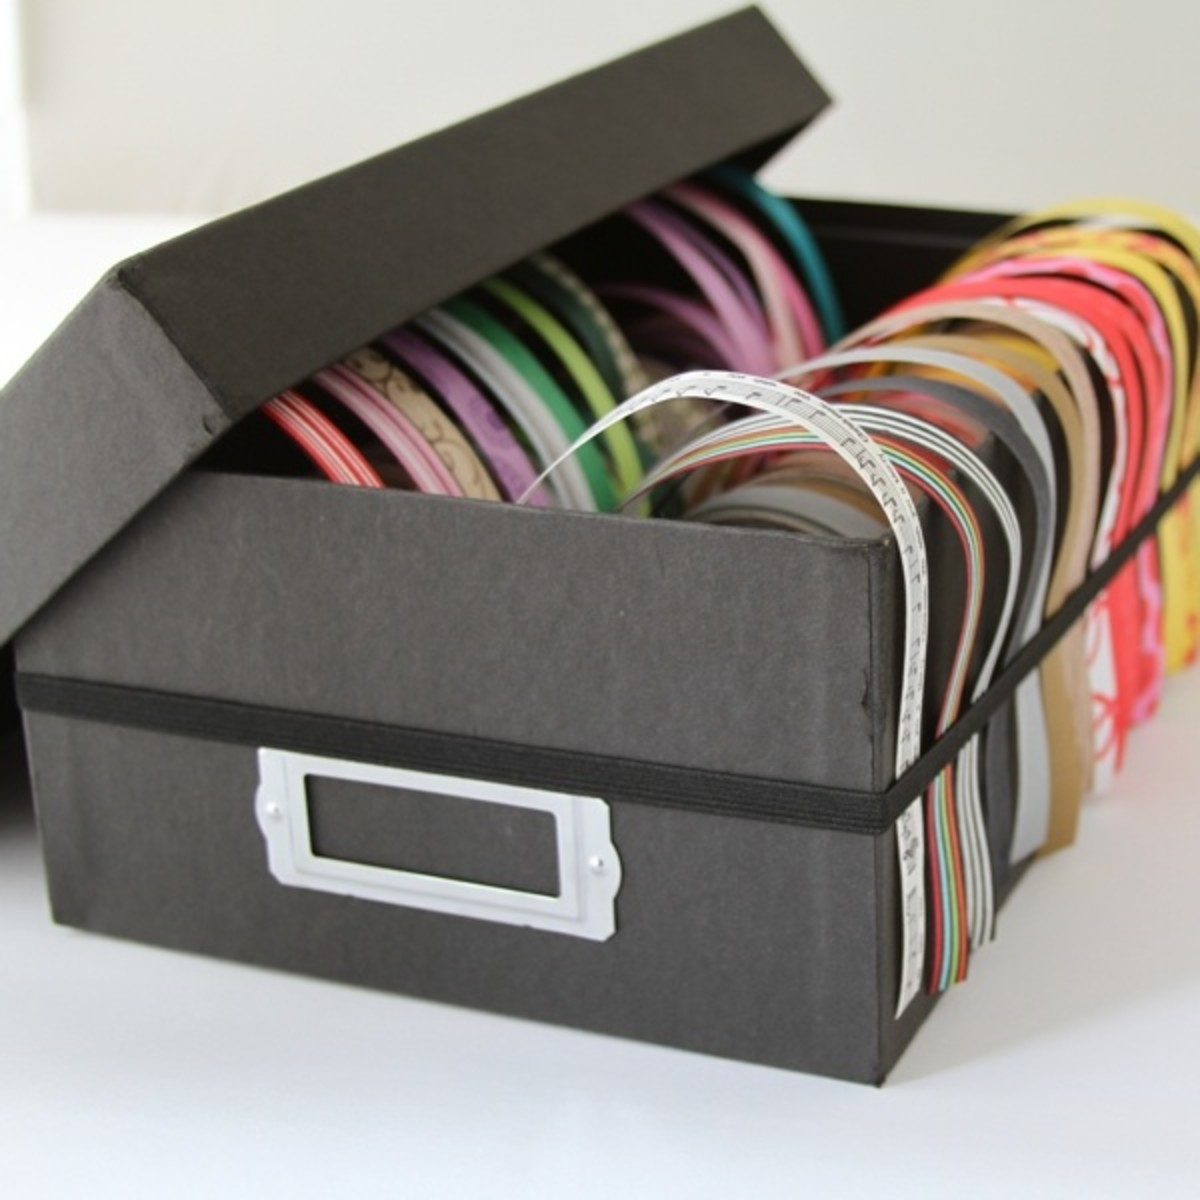 Simple photo box with elastic to keep it all in order